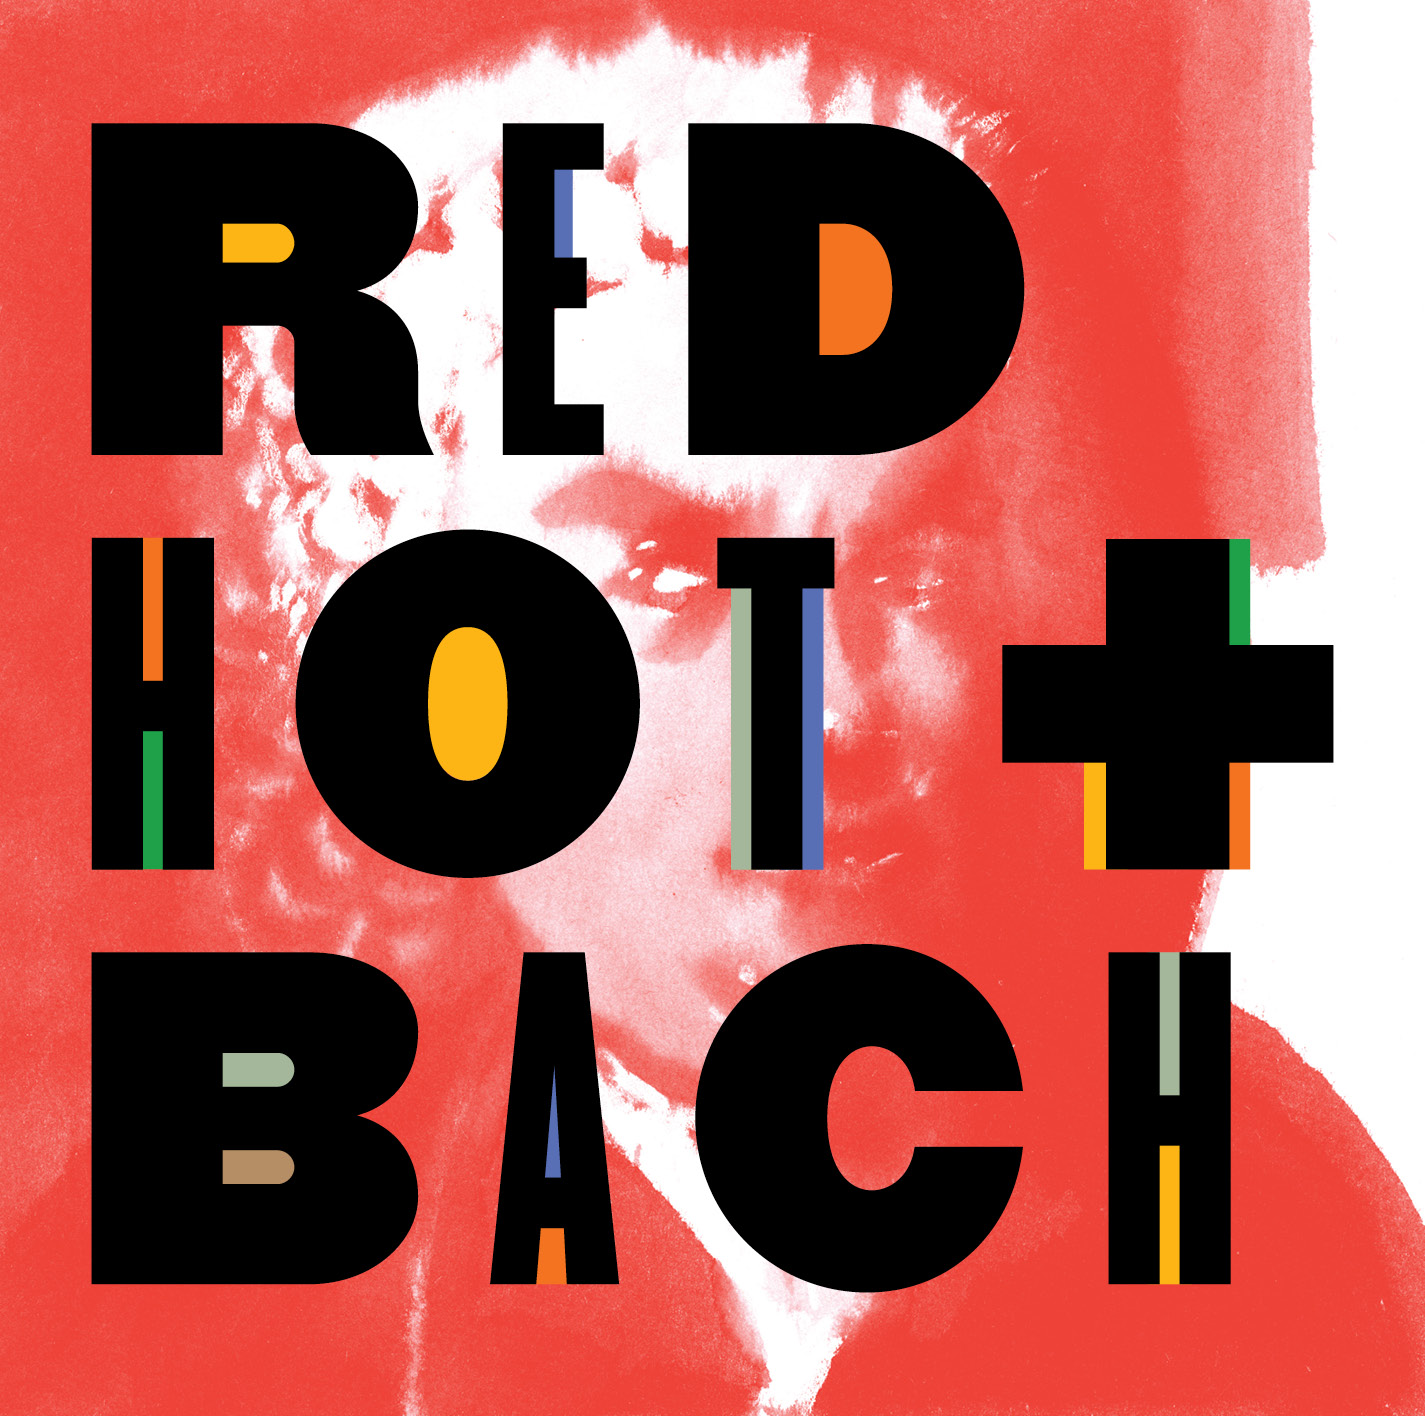 redhot250614